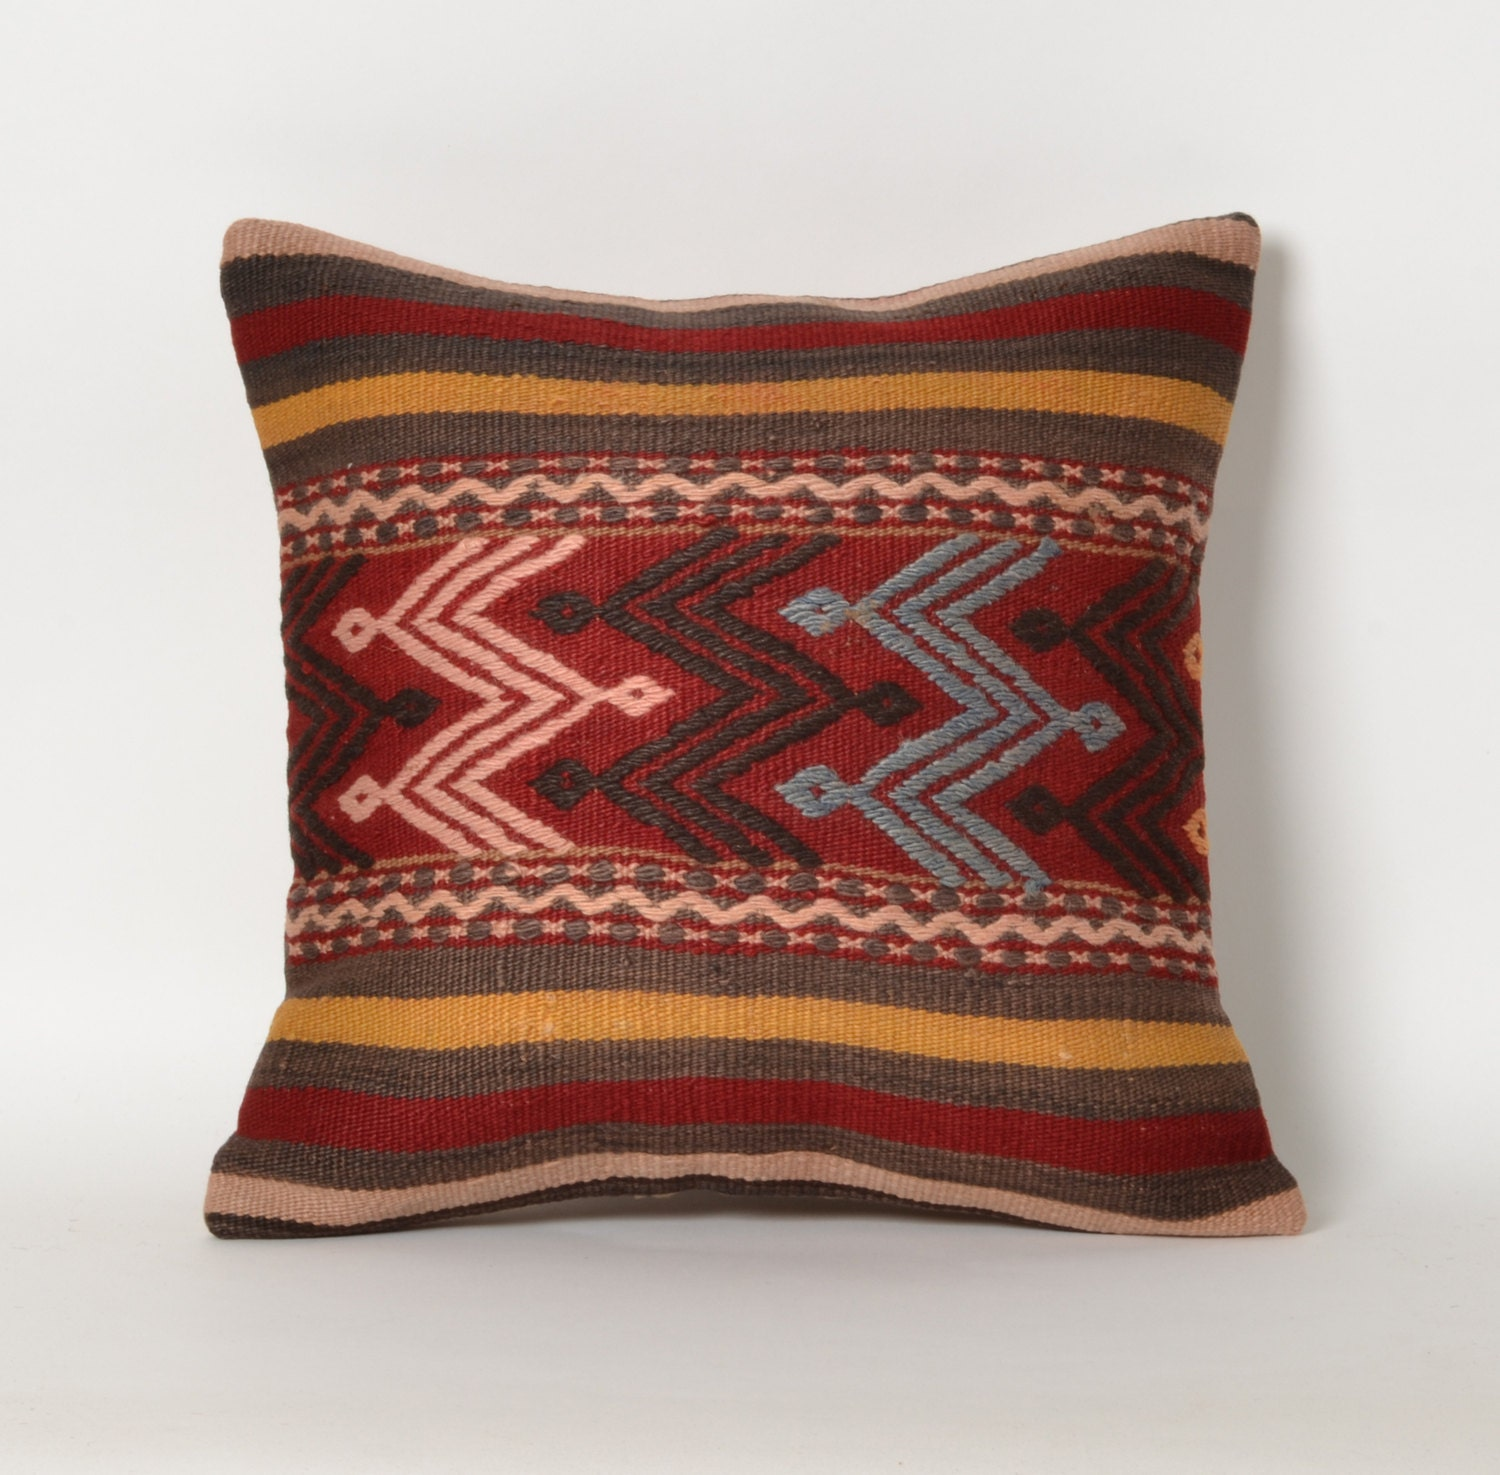 Turkish Kilim Throw Pillows : kilim pillow kilim pillow turkish pillow decorative